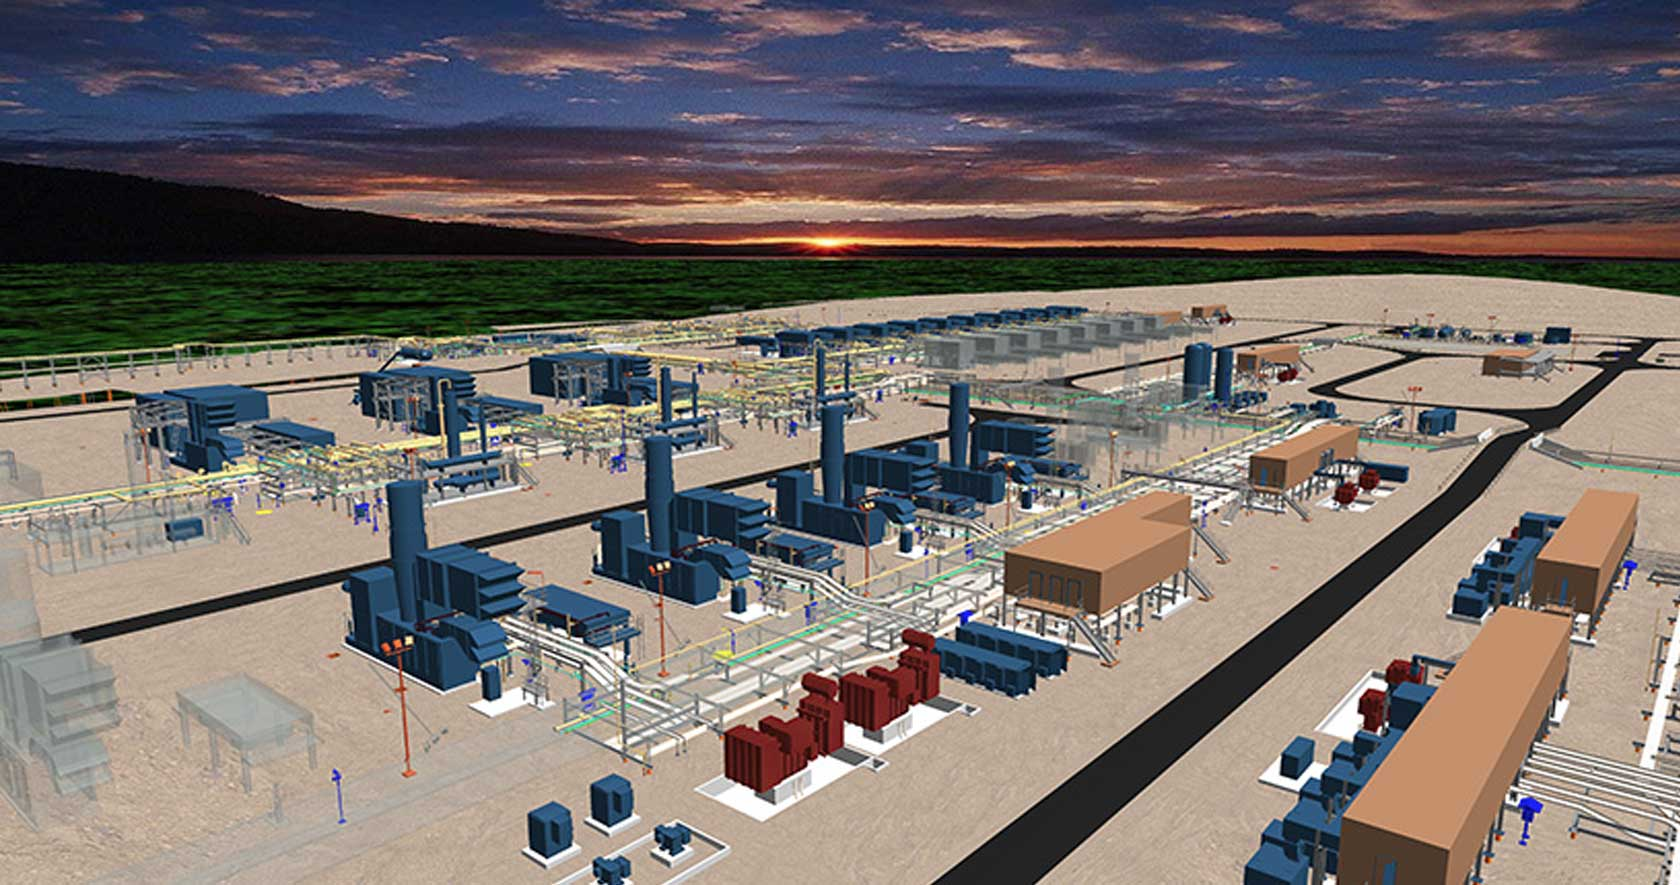 Santos GLNG achieves inhouse design replication with Intergraph design tools